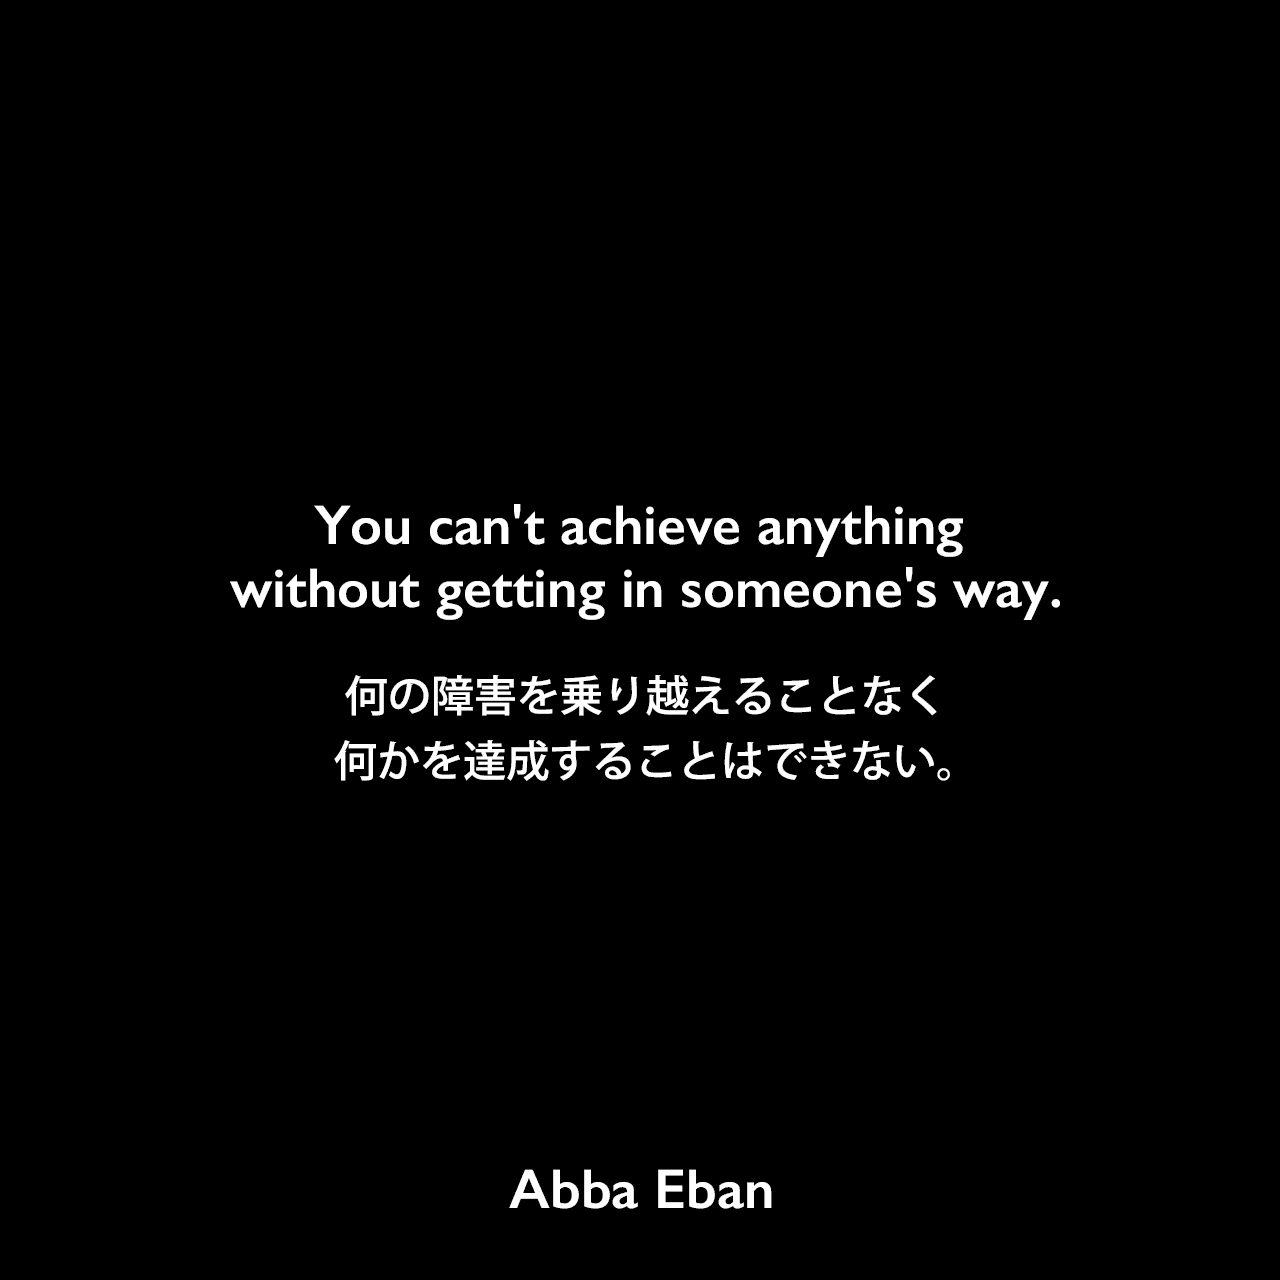 You can't achieve anything without getting in someone's way.何の障害を乗り越えることなく、何かを達成することはできない。Abba Eban